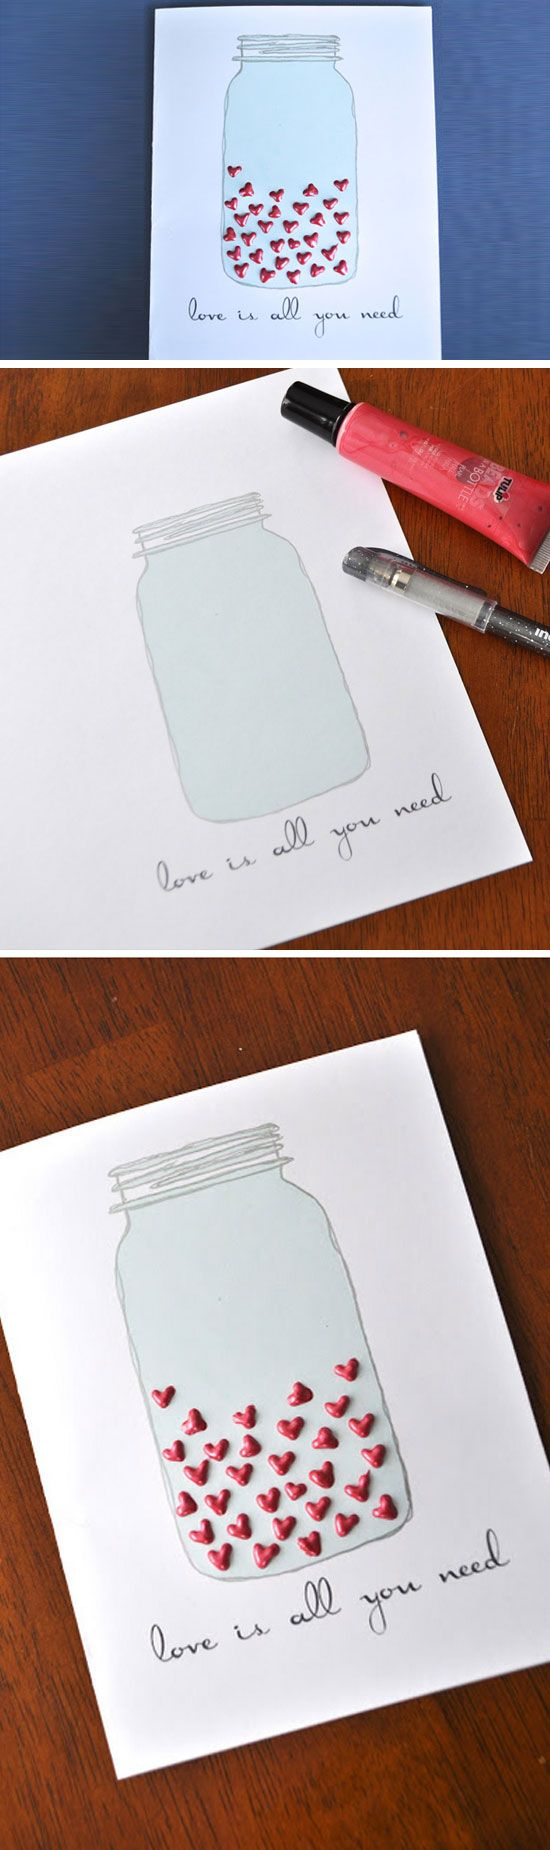 539 best amor images on pinterest | gift ideas, hand made gifts and